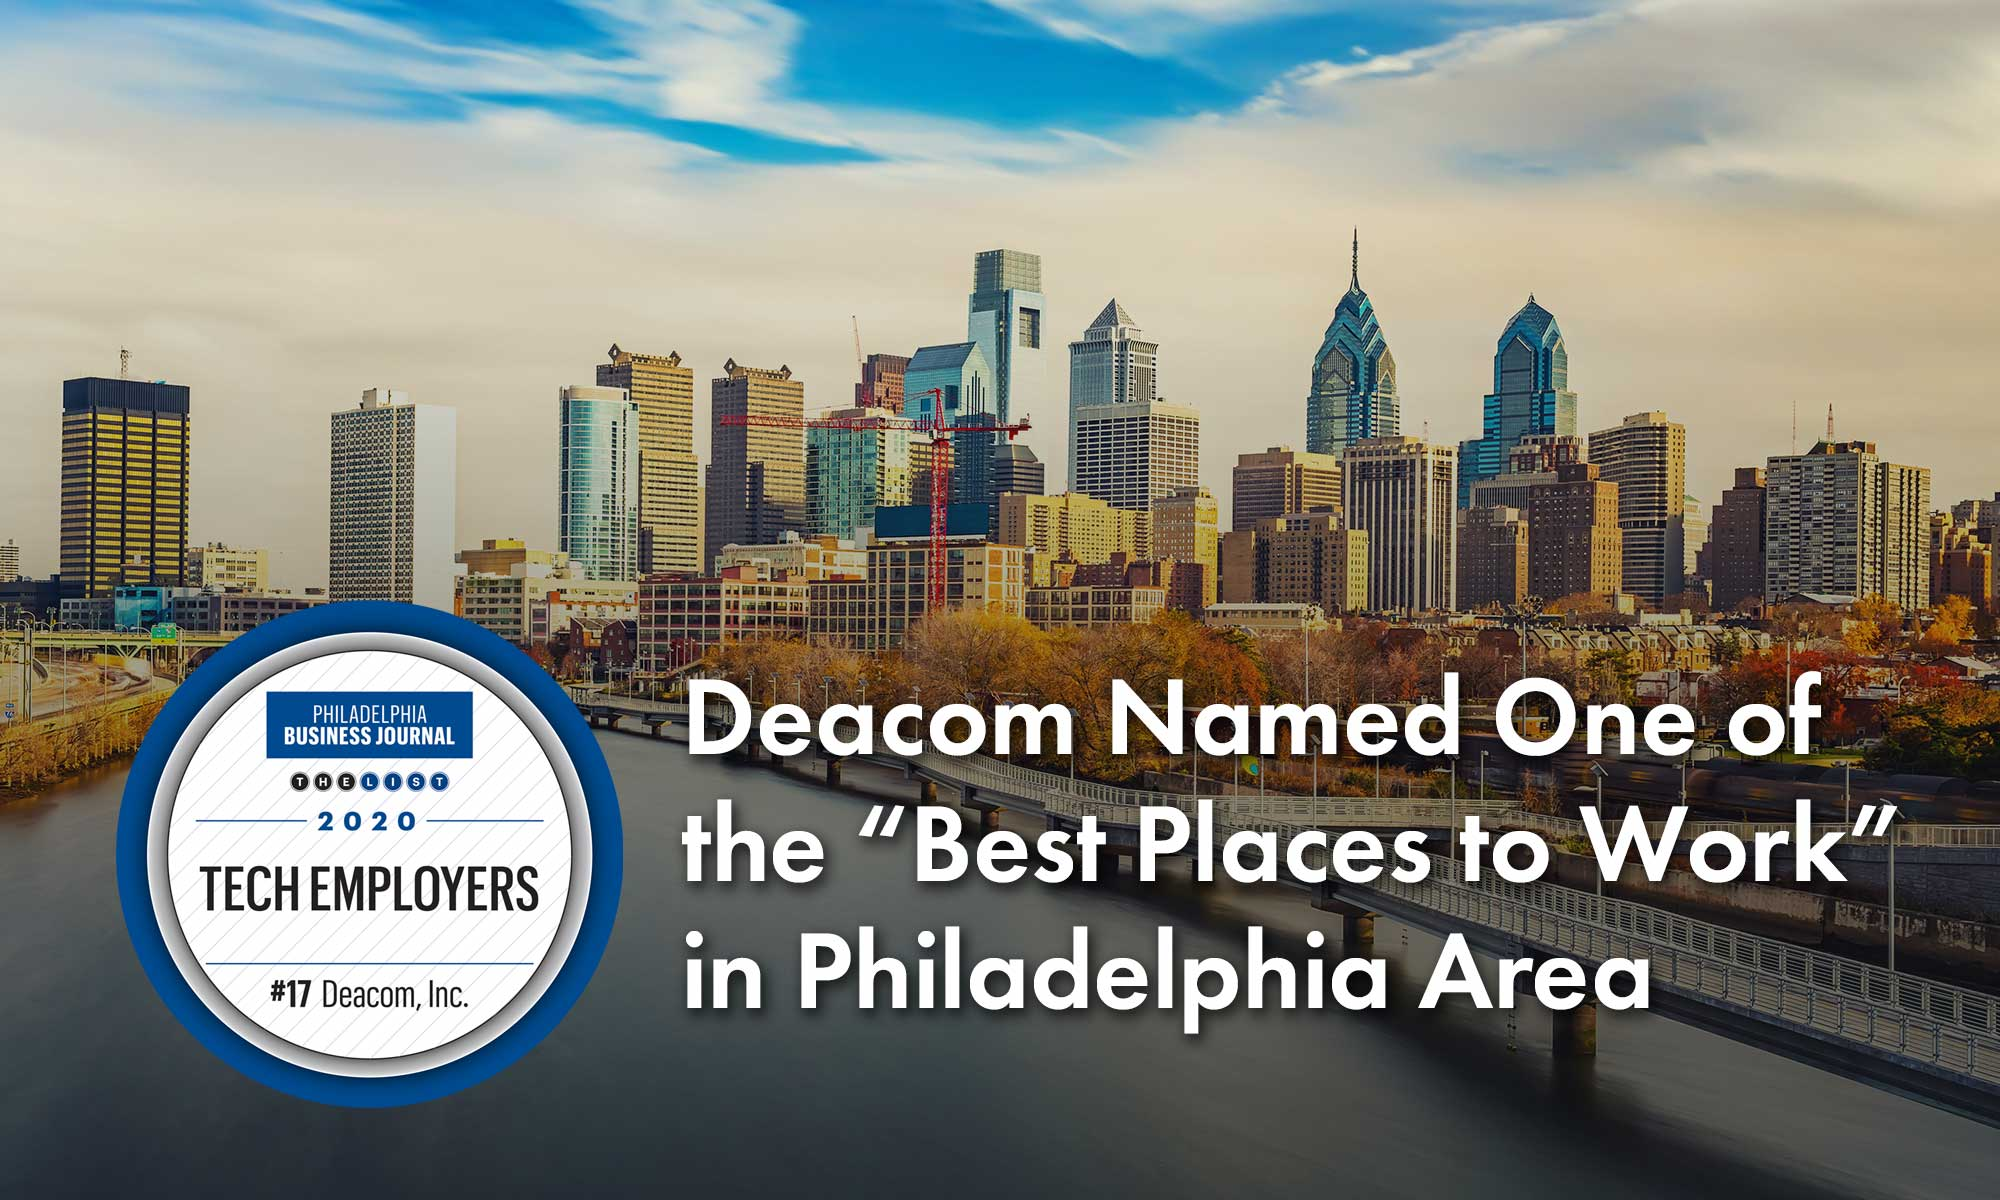 """Deacom Named One of the """"Best Places to Work"""" in Philadelphia Area"""